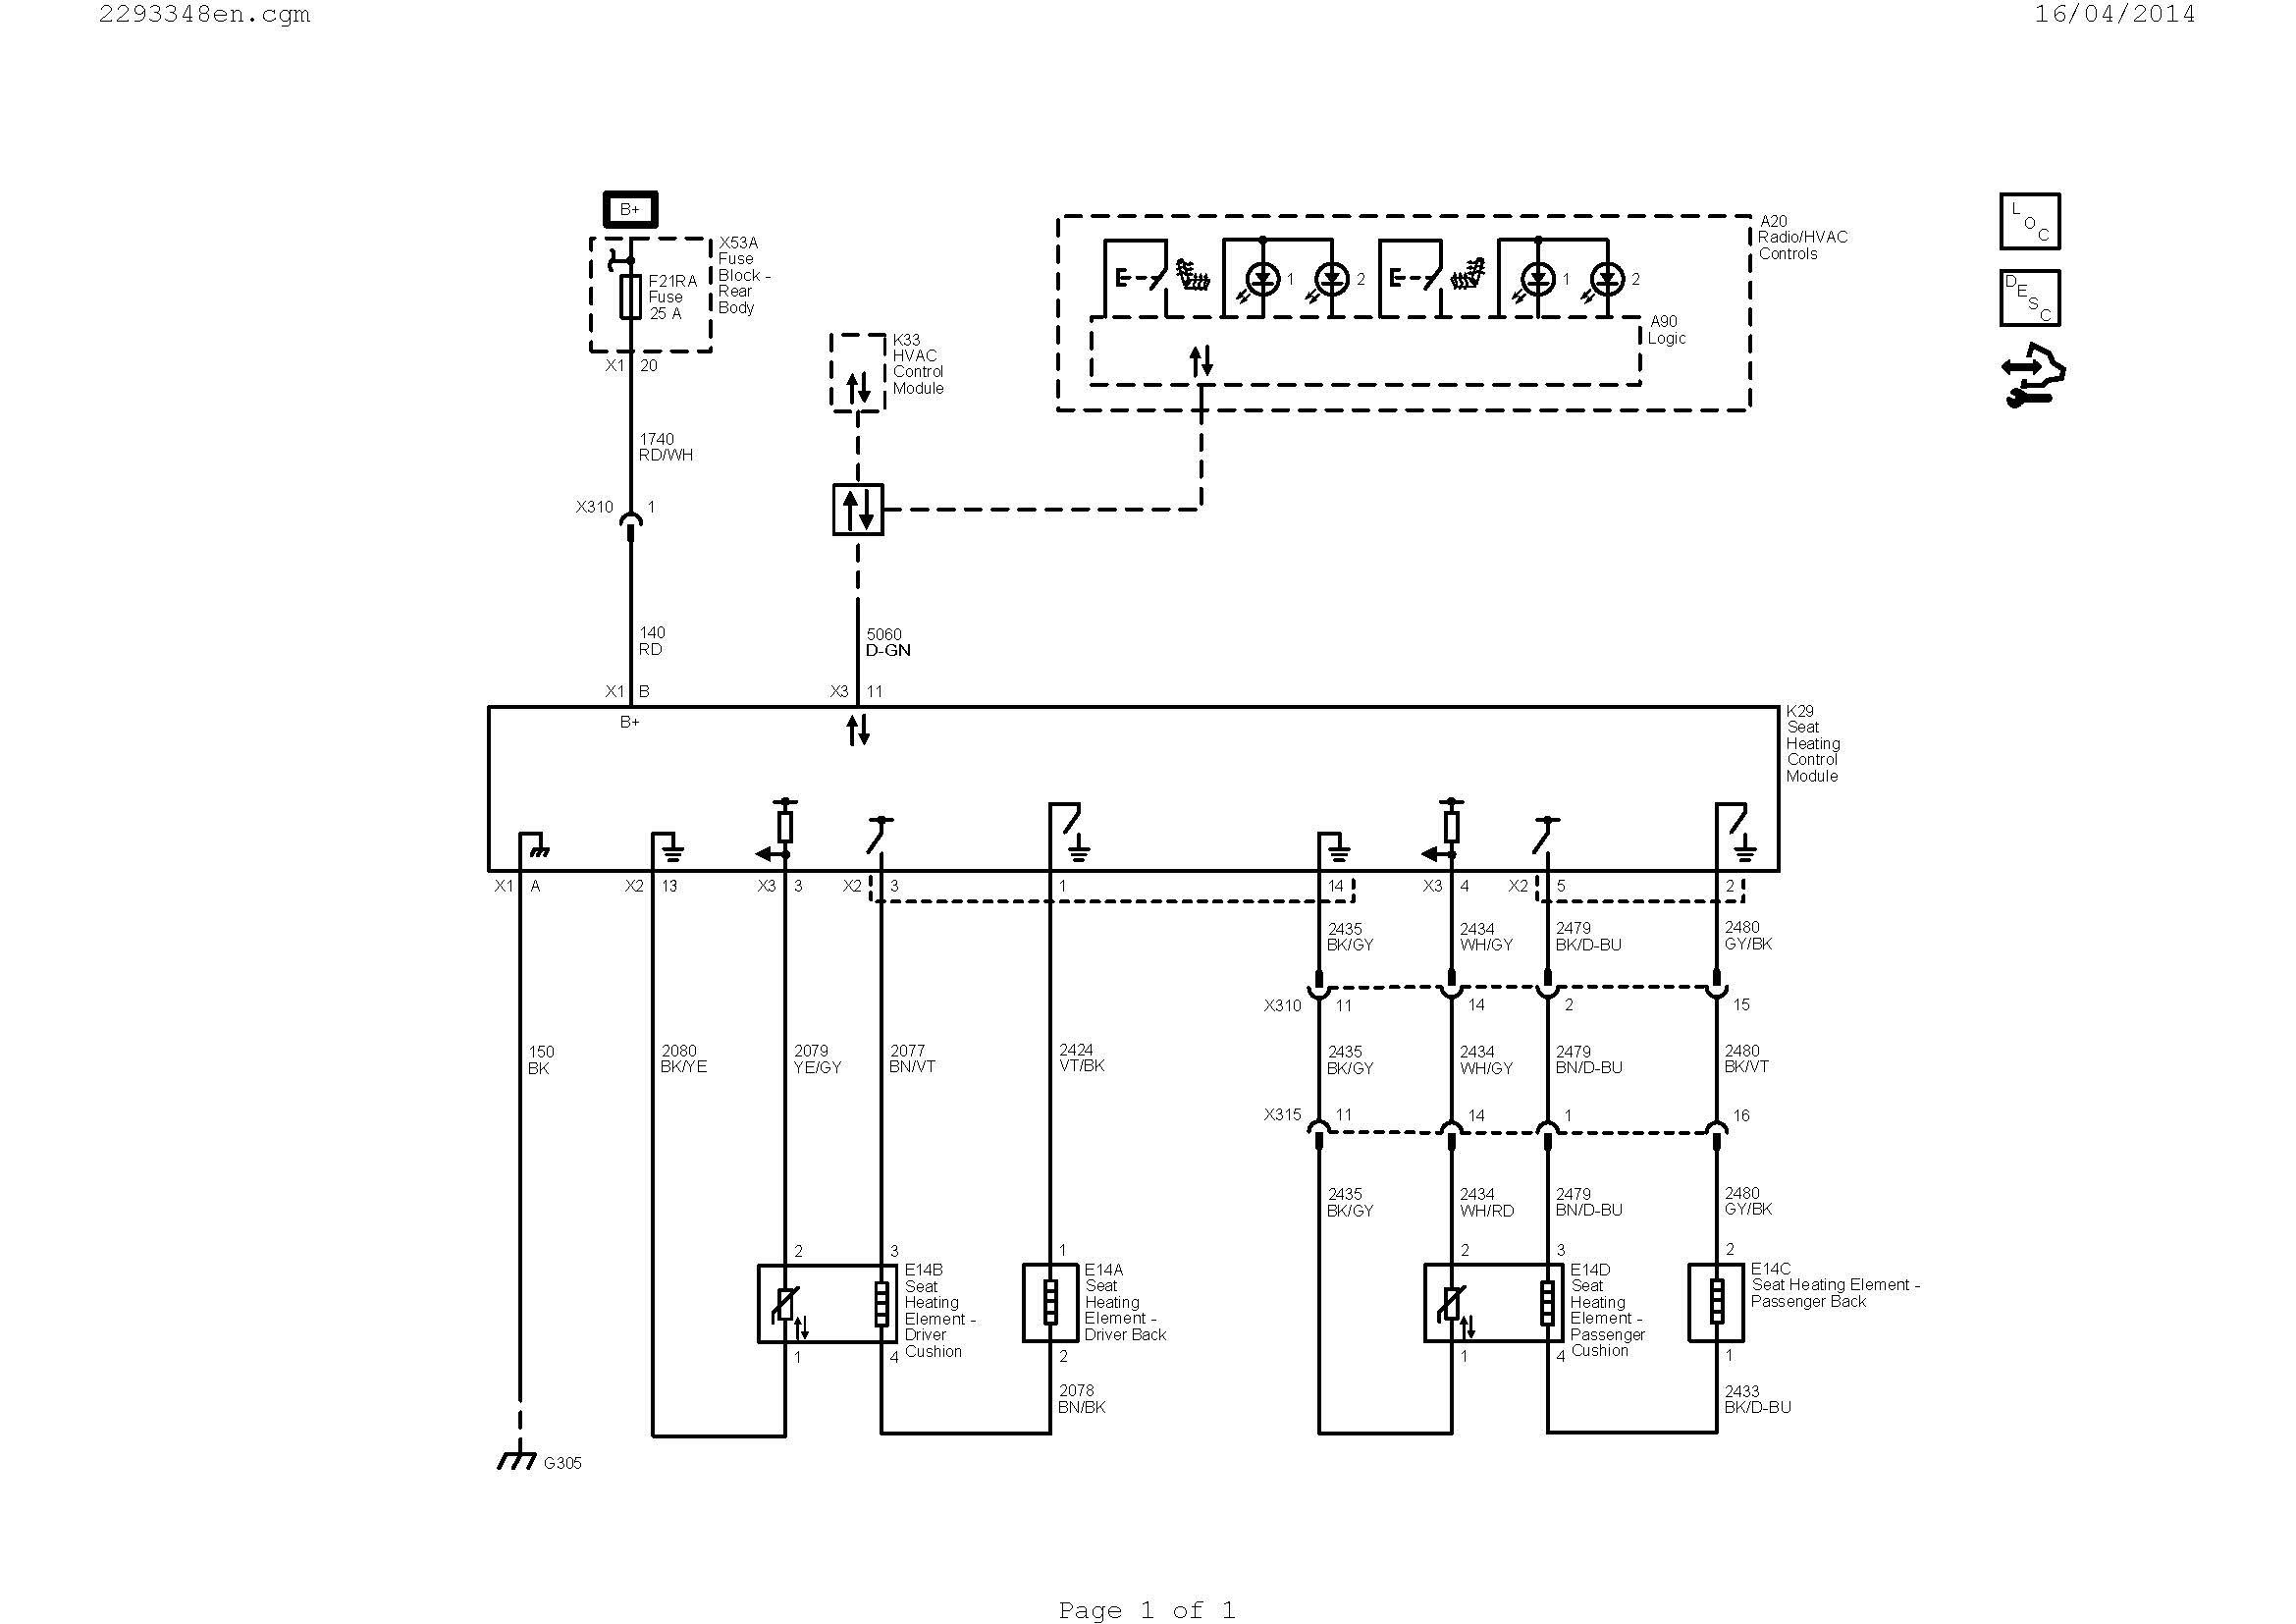 phoenix phase converter wiring diagram Collection-electric heater wiring diagram Collection Wiring Diagrams For Central Heating Refrence Hvac Diagram Best Hvac DOWNLOAD Wiring Diagram 9-f